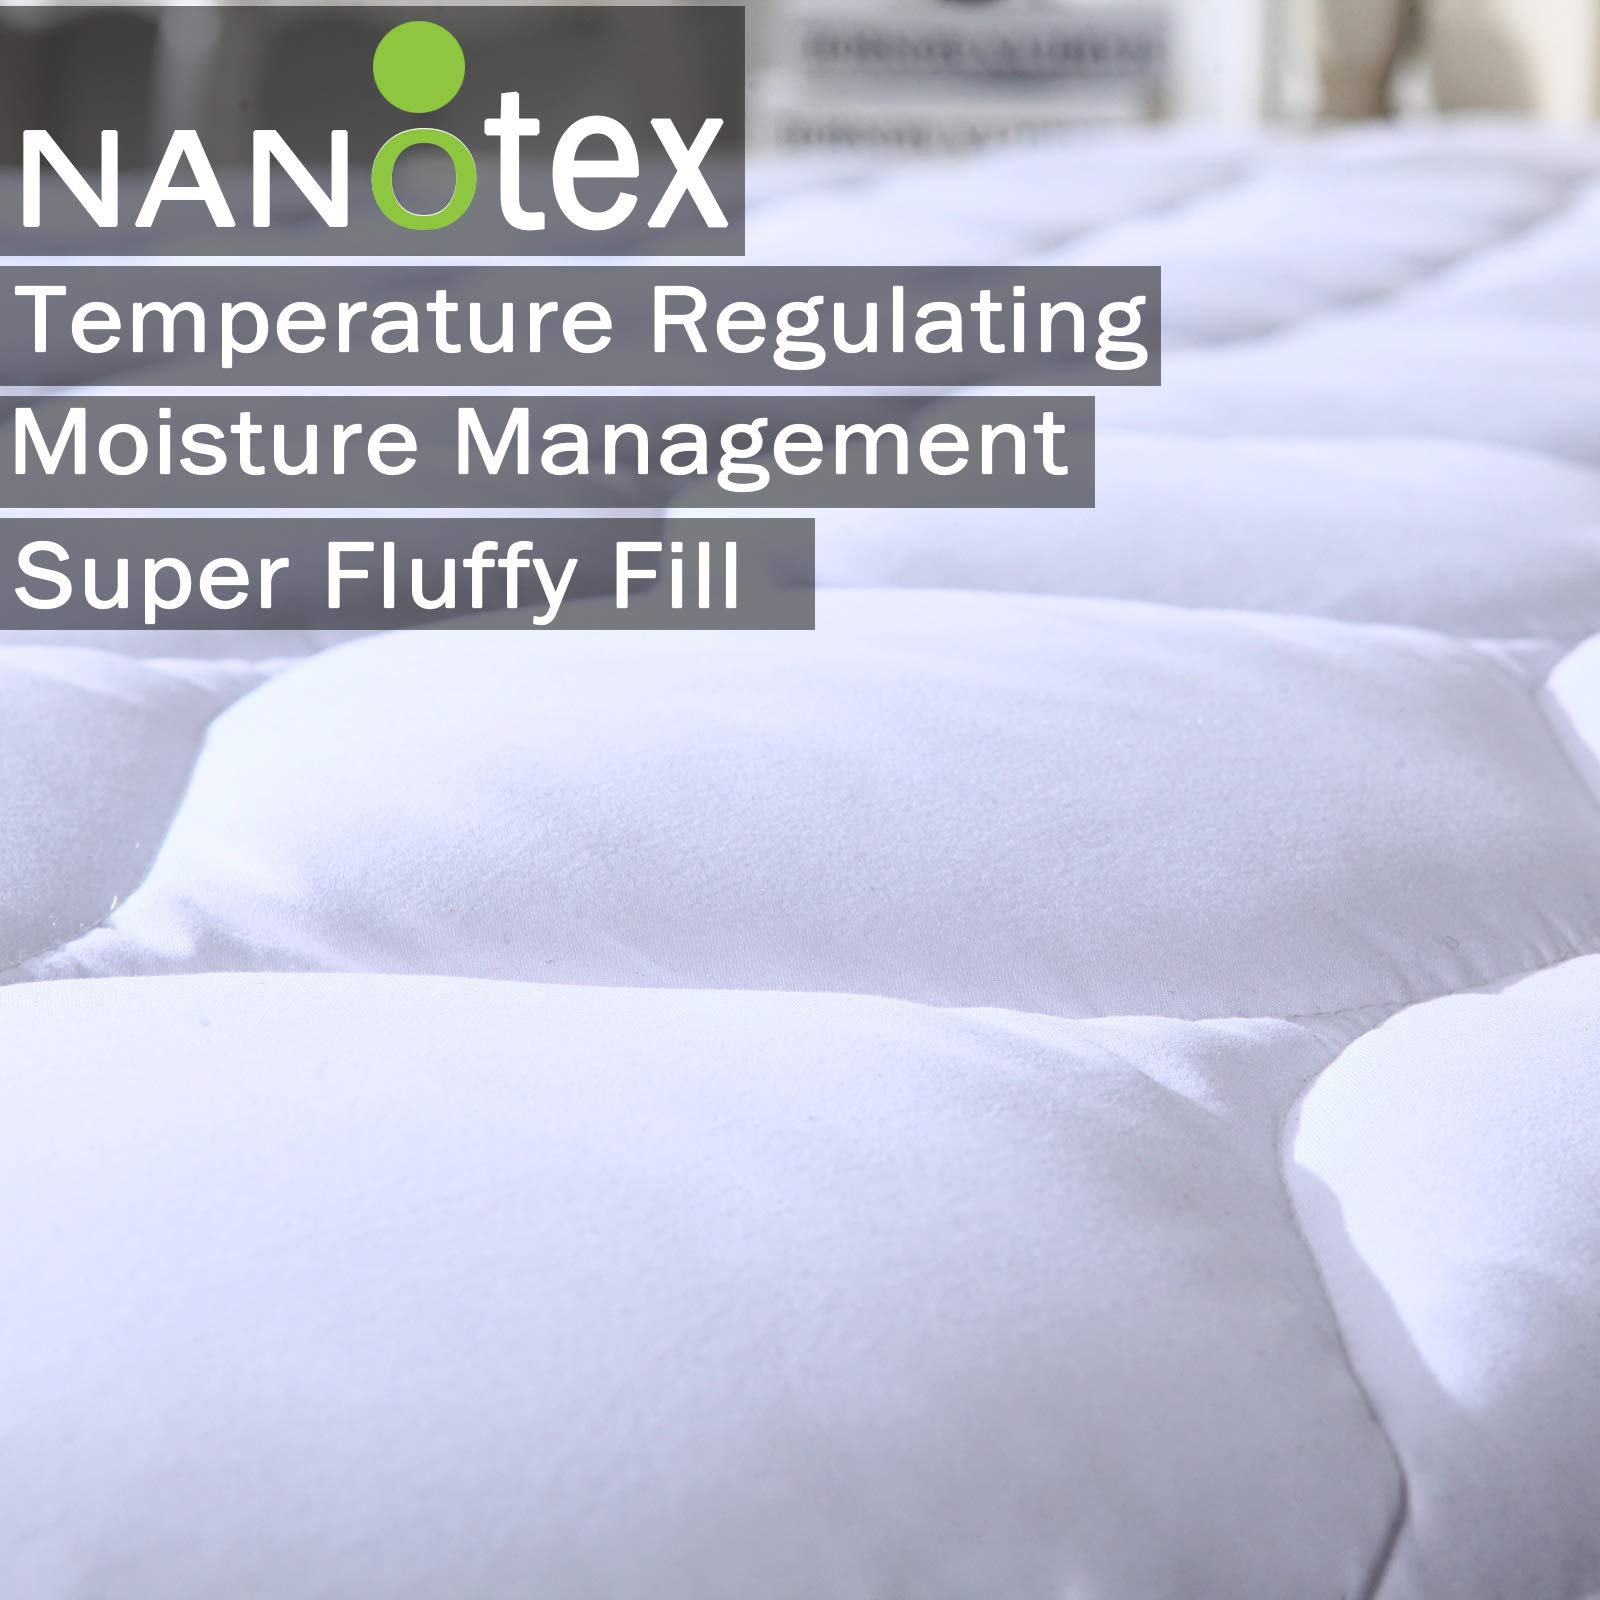 Quilted Fitted Mattress Pad Featuring Nanotex Coolest Comfort Temperature Regulating Cooling Technology. Super Soft SPA Grade Microfiber. Guaranteed to Fit Up to 18 Inch Mattress (Queen Size)